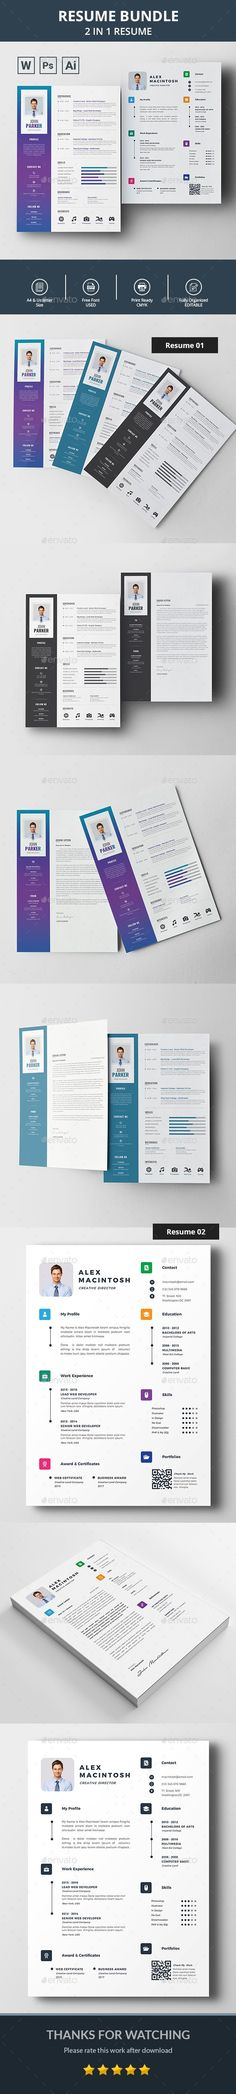 Resume Templates Resume CV Design